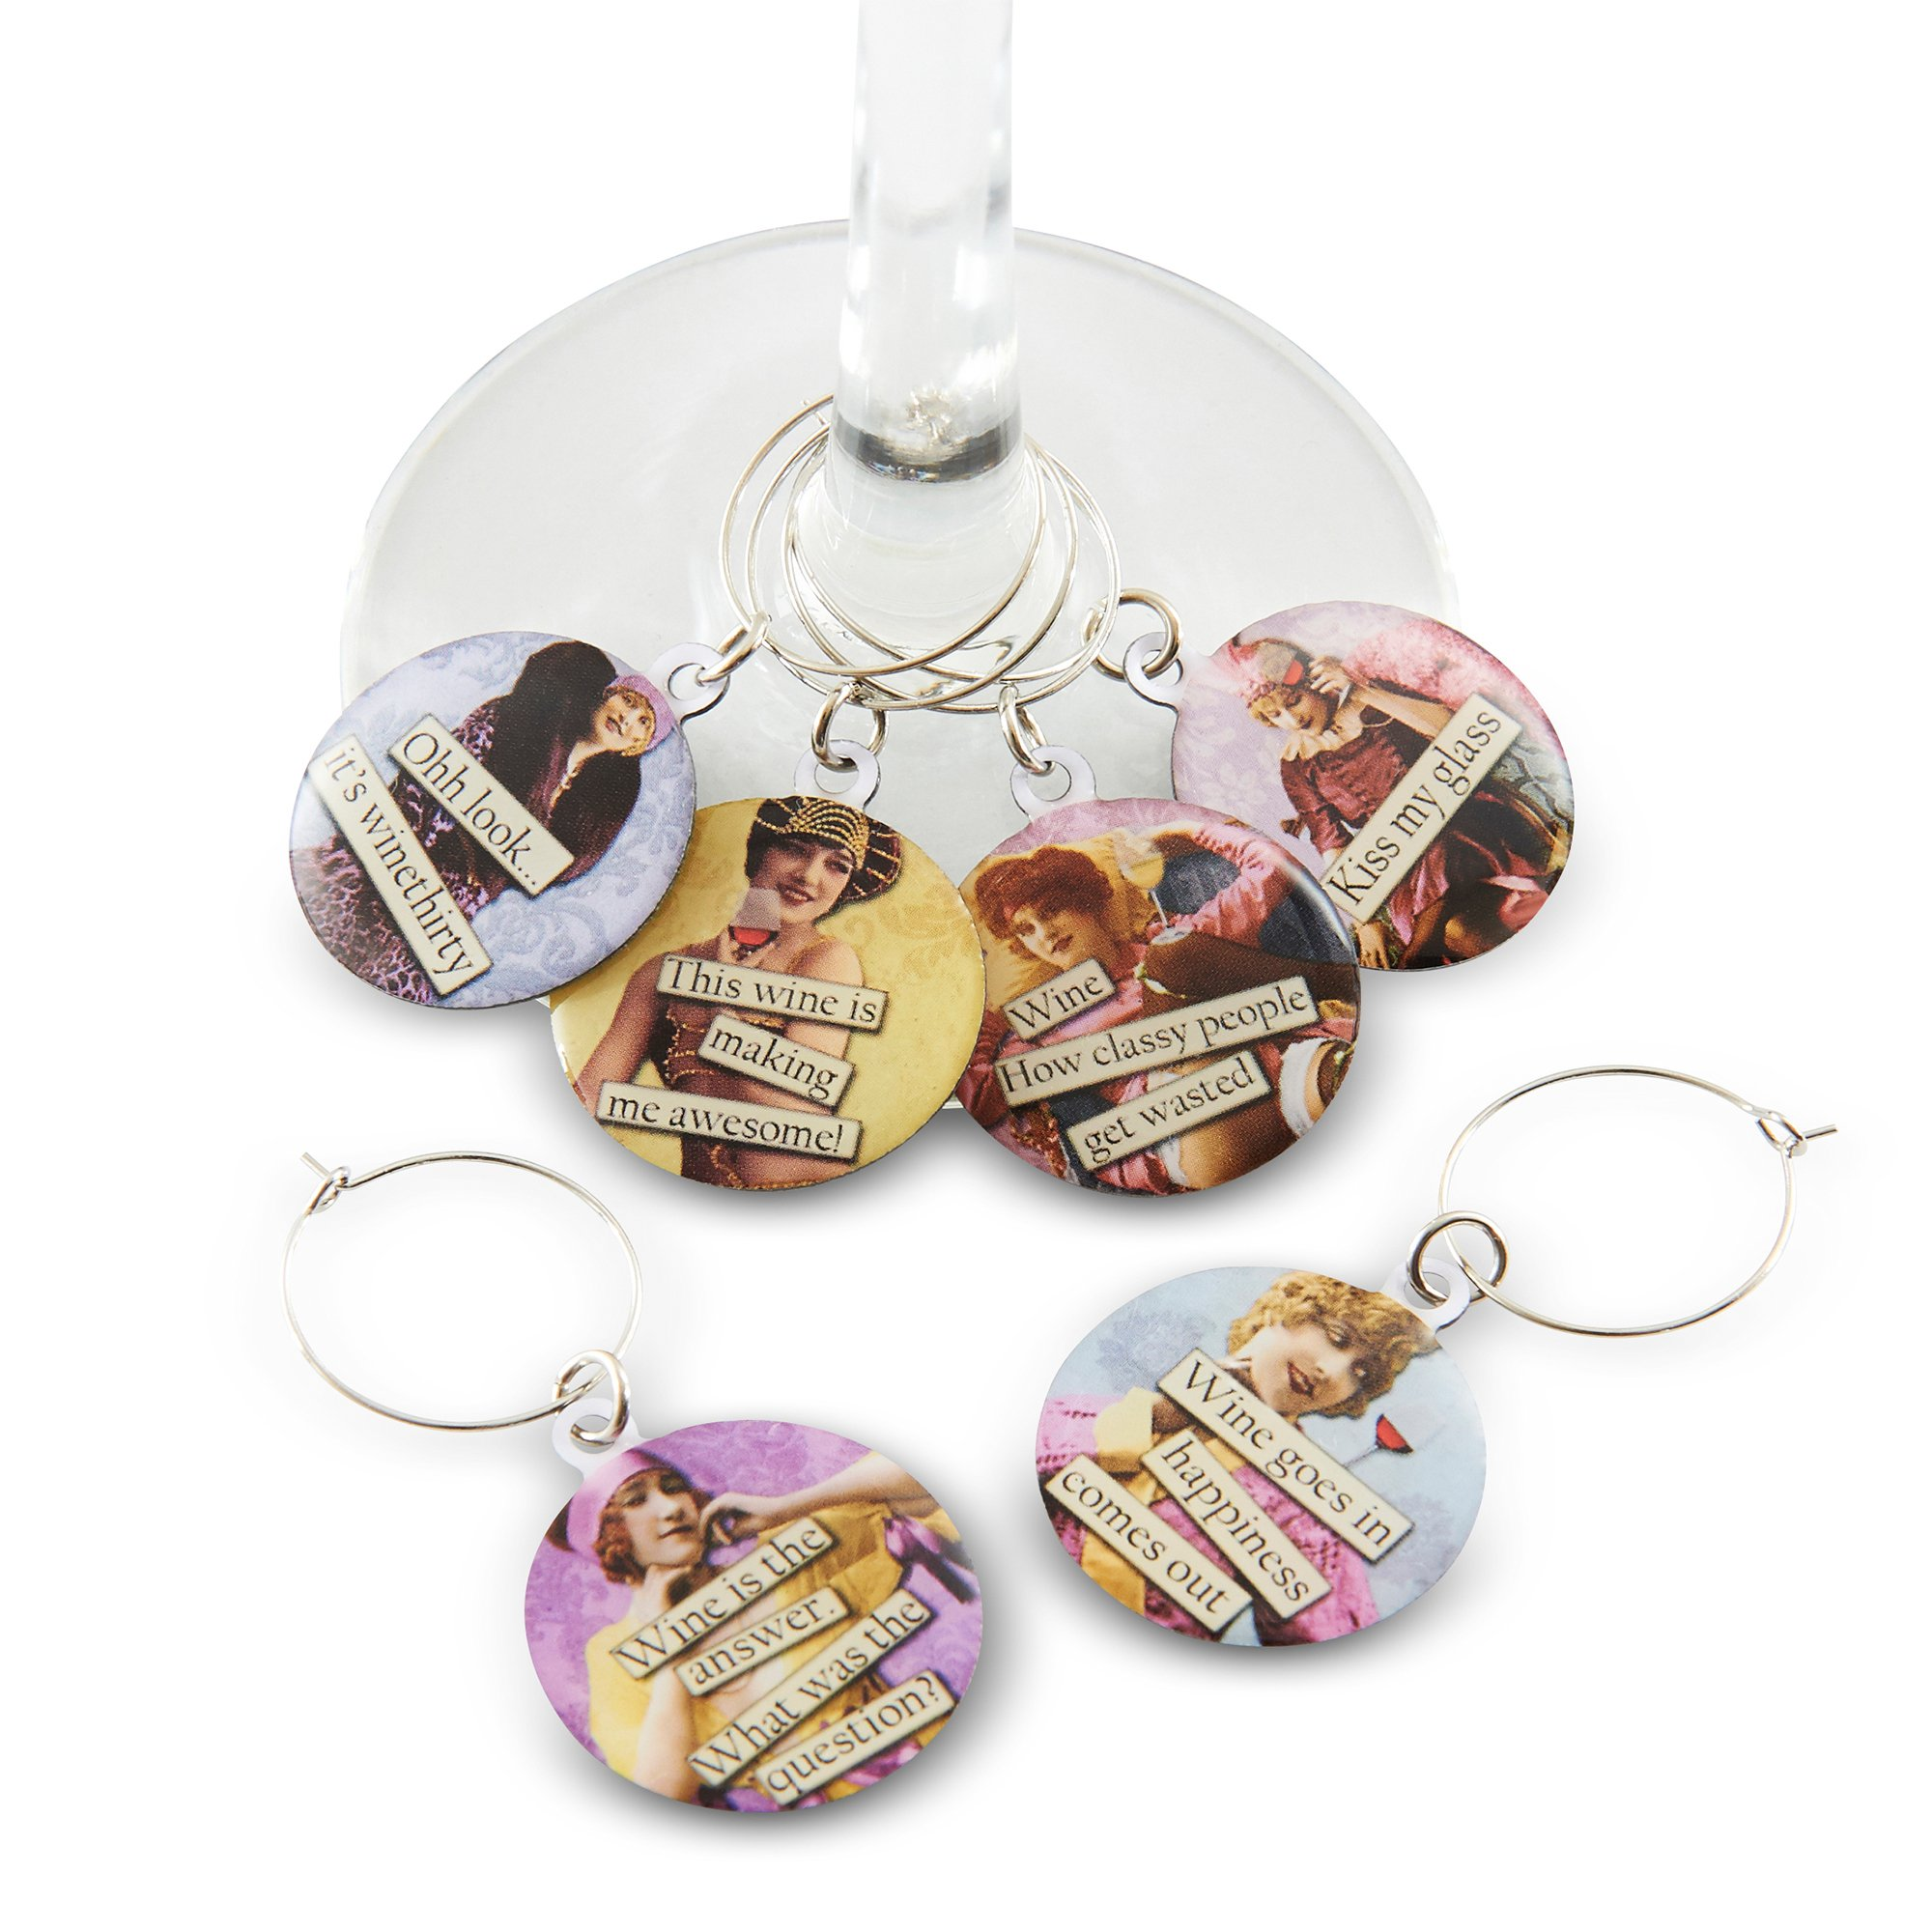 Funny Vintage Women Wine Glass Charms - Set of 6 Wine Tags. Always know which glass is yours with these wine markers! by Savvy Design Store (Image #1)